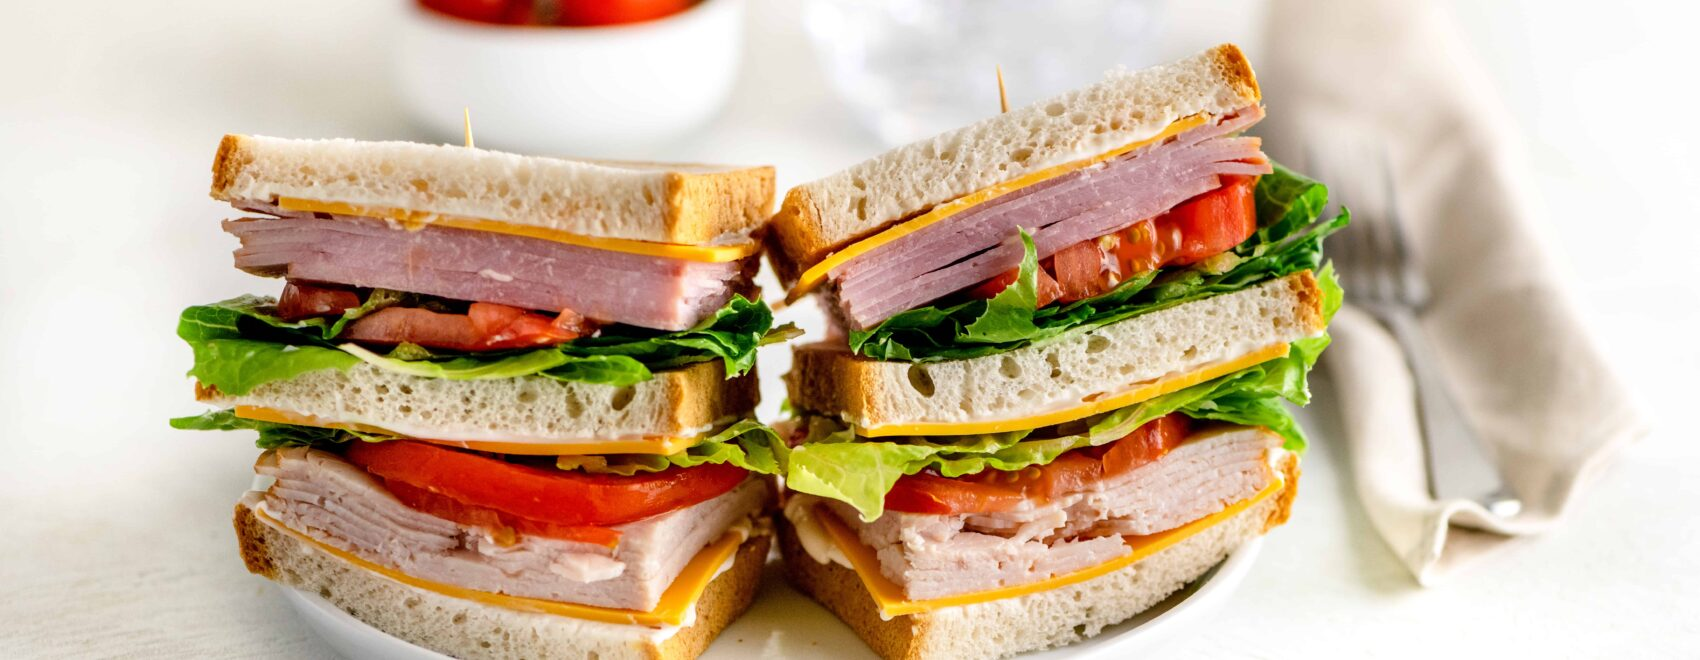 Triple decker sandwich of ham, roasted turkey on three pieces of gluten free bread with cheese, lettuce, tomato and mayo on a white plate